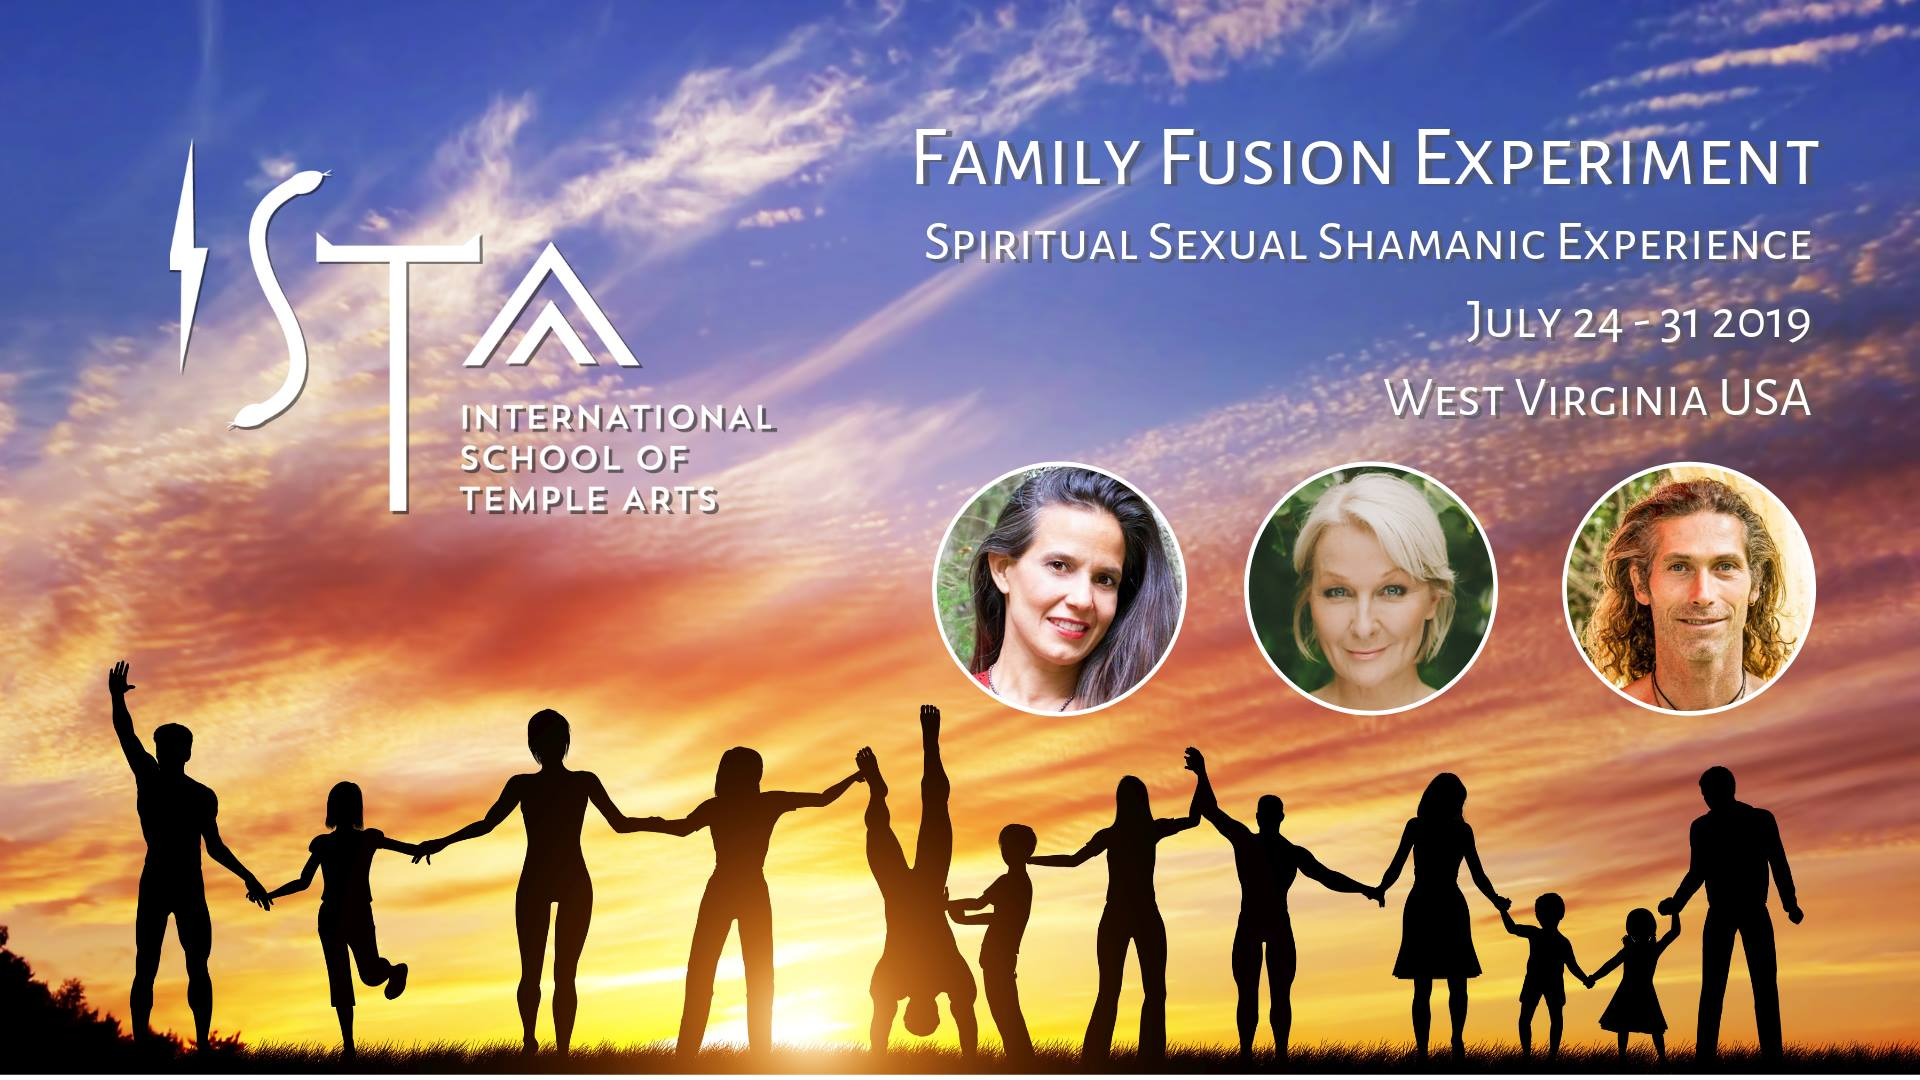 ISTA Family Fusion Experiment West Virginia USA